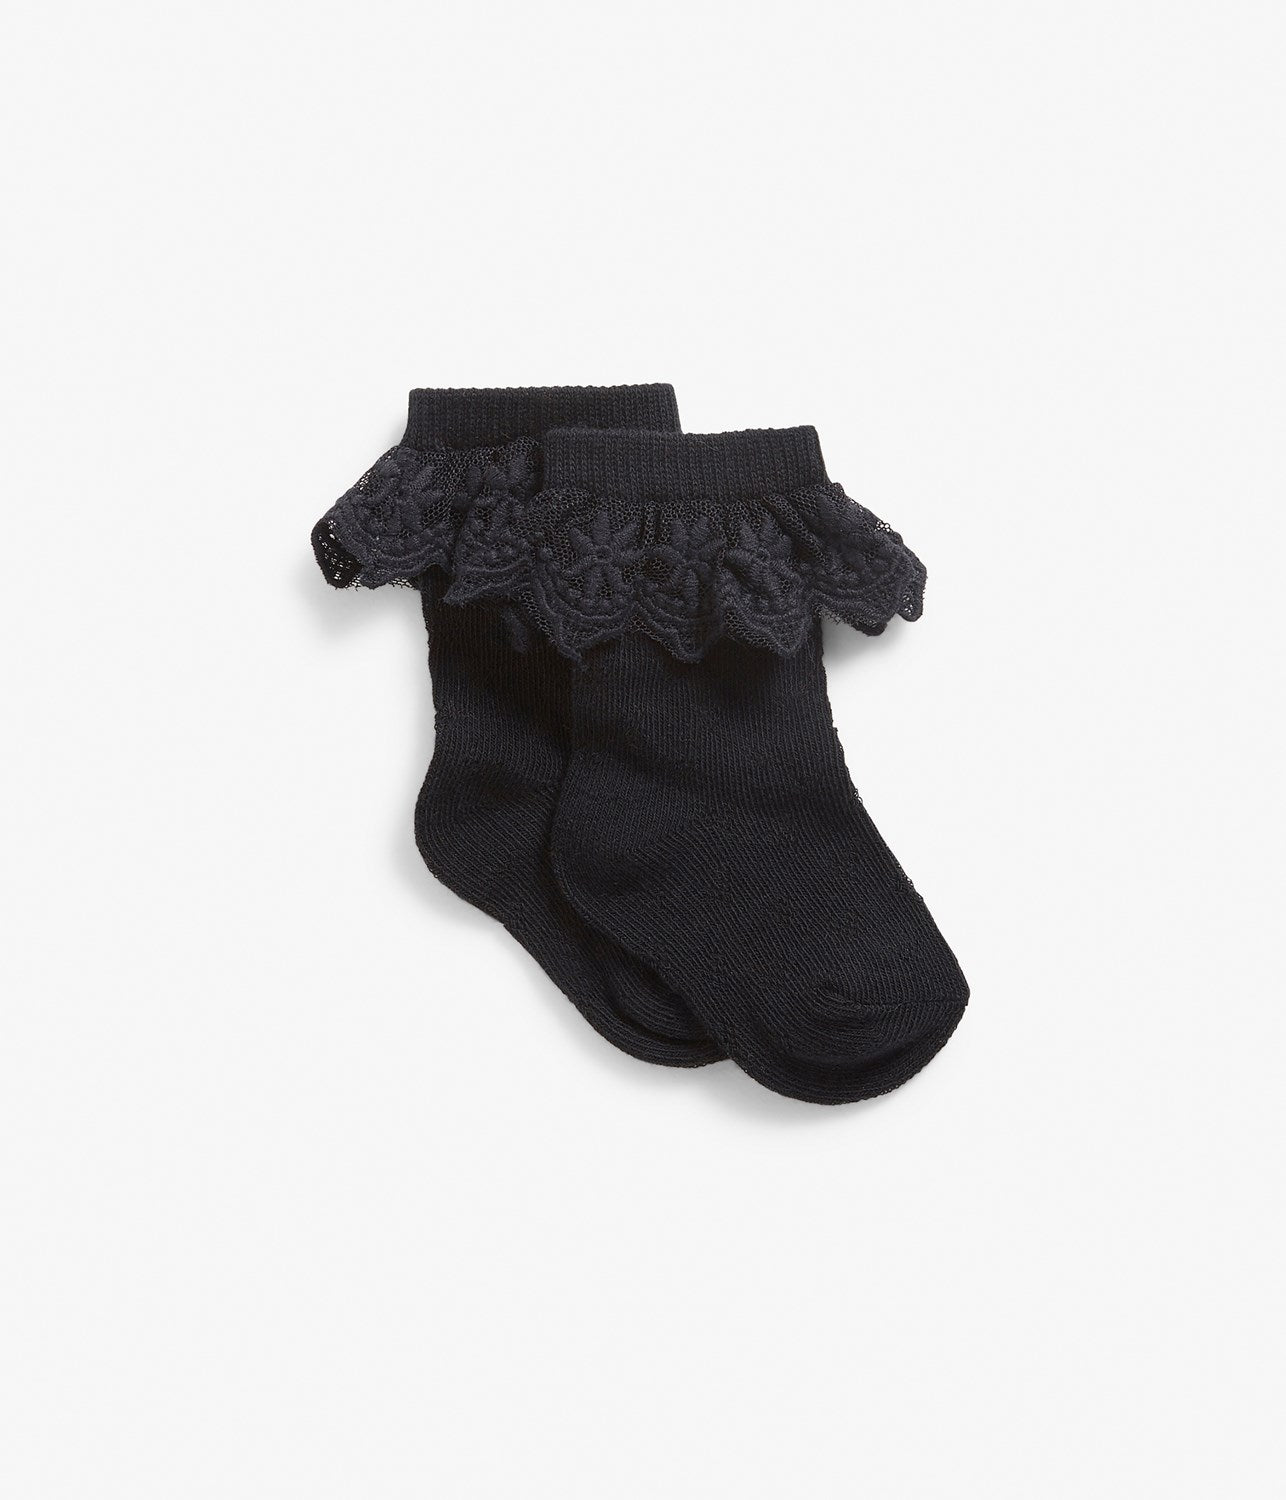 Baby black socks with lace frills